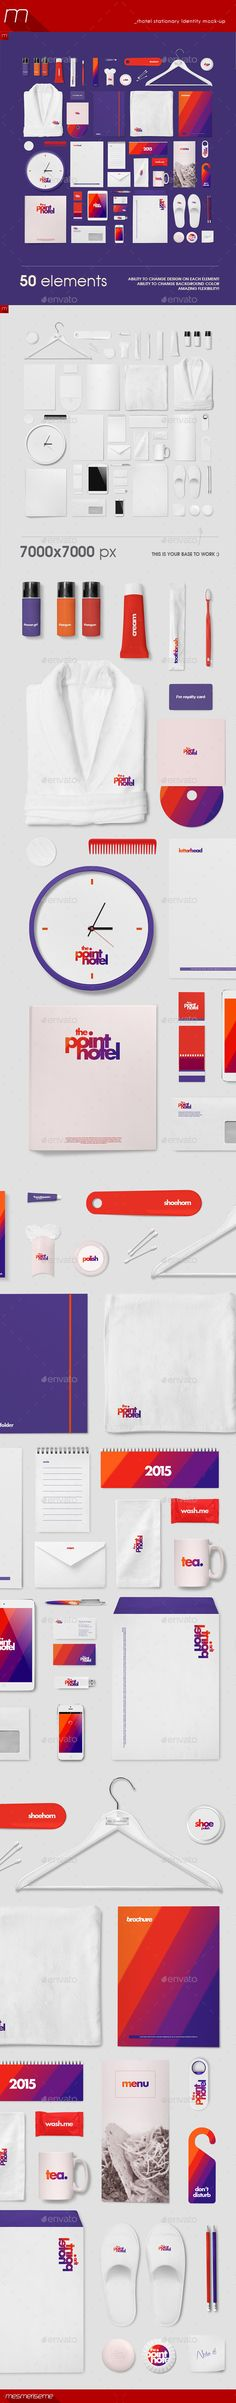 Hotel Identity Stationery Mock-up | #hotelidentitymockup #hotelstationerymockup | Download: http://graphicriver.net/item/hotel-identity-stationery-mockup/8886251?ref=ksioks